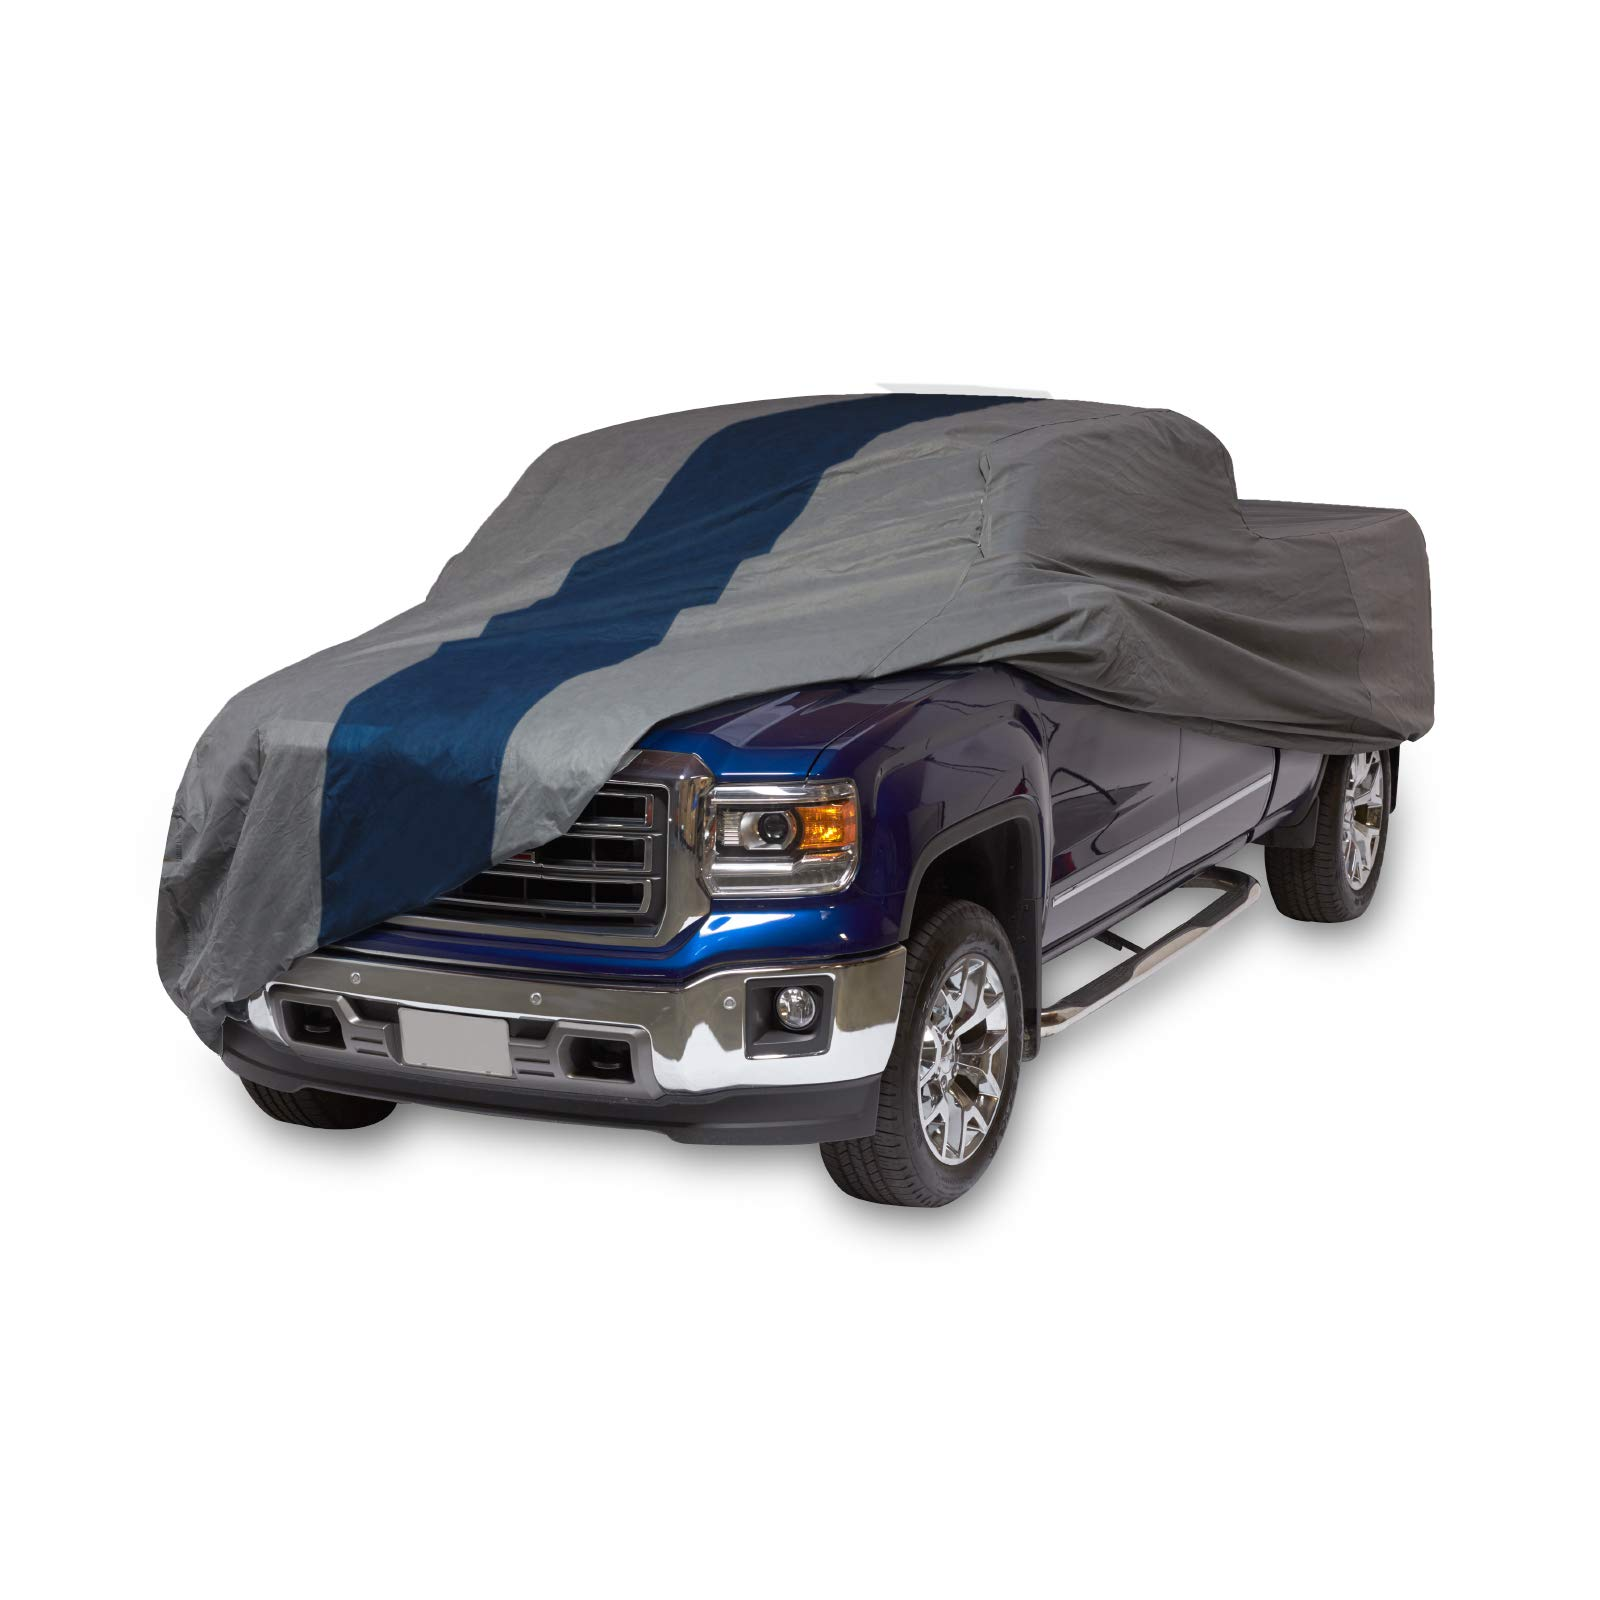 Duck Covers Double Defender Pickup Truck Cover for Crew Cab Long Bed Dually Trucks up to 22'